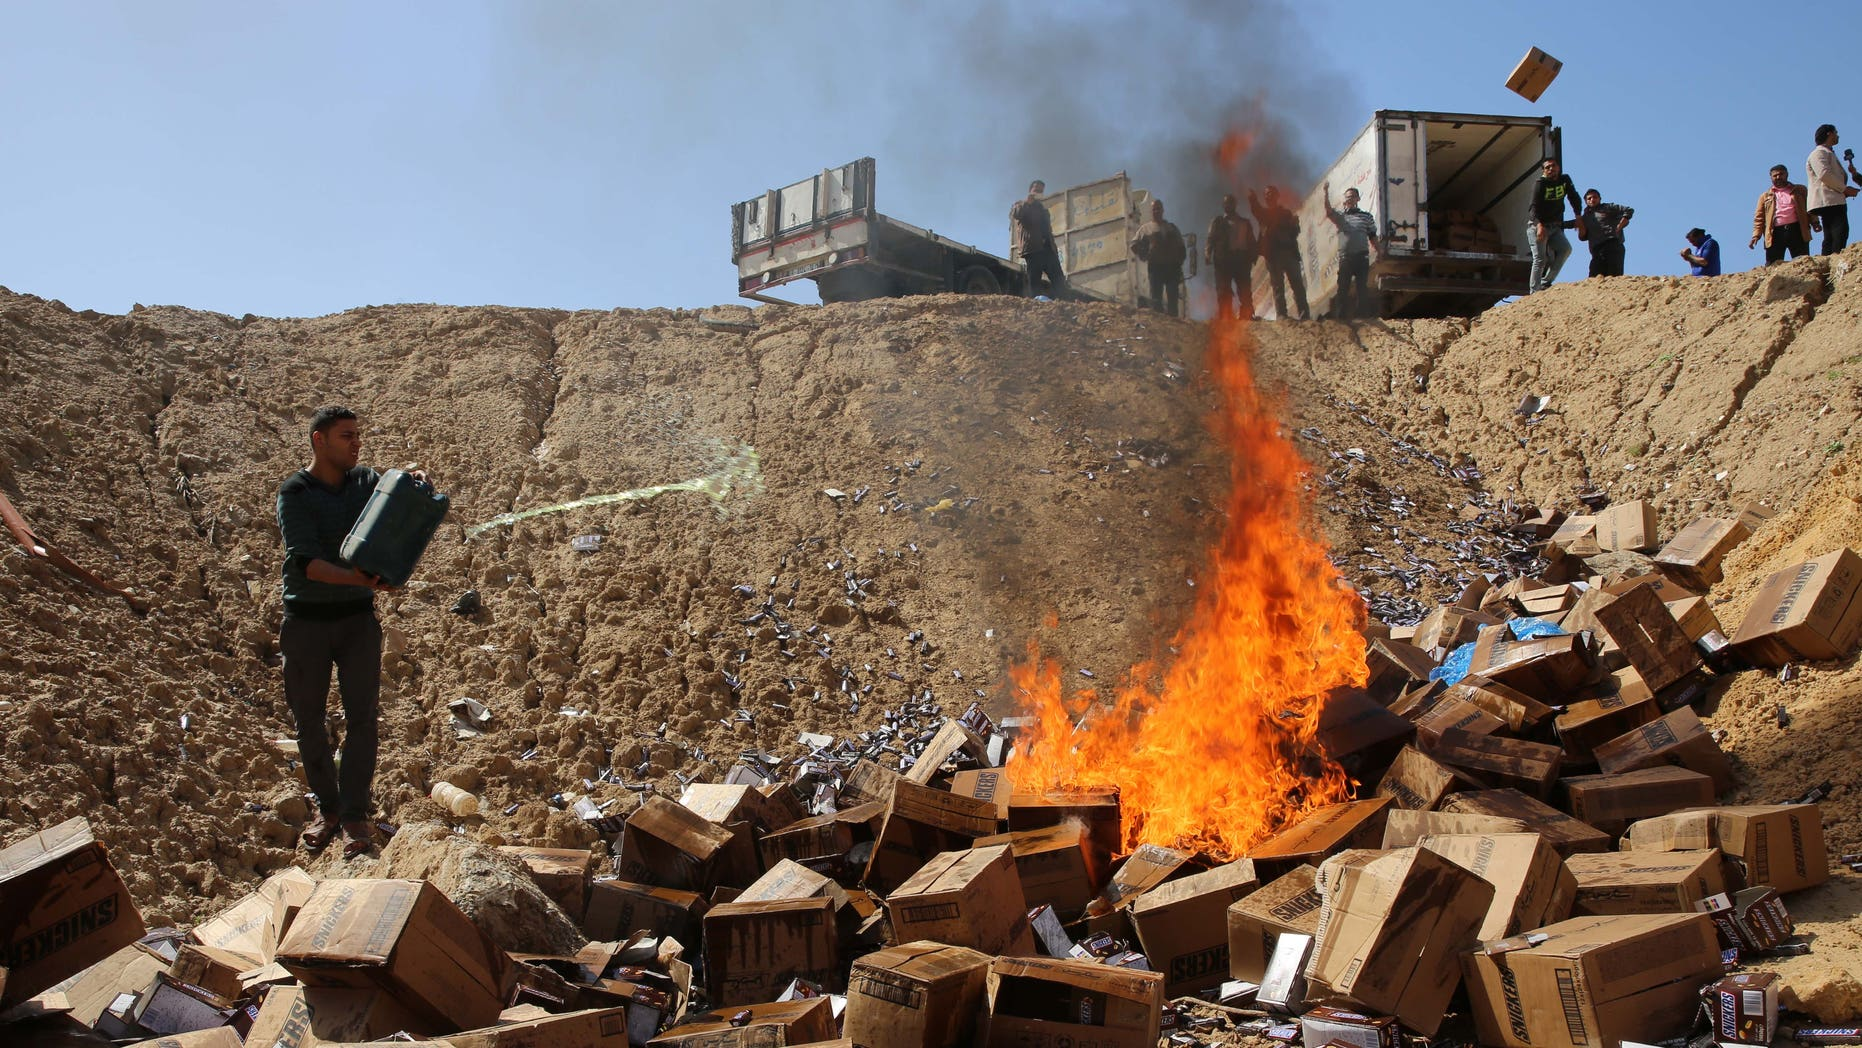 Palestinian worker throws gasoline on buringing boxes of Snickers chocolate on the outskirts of Gaza City, Thursday, March 10, 2016. Hamas authorities in Gaza say they disposed of 15 tons of chocolate in response to a mass recall the manufacturing company issued last month. (AP Photo/Adel Hana)